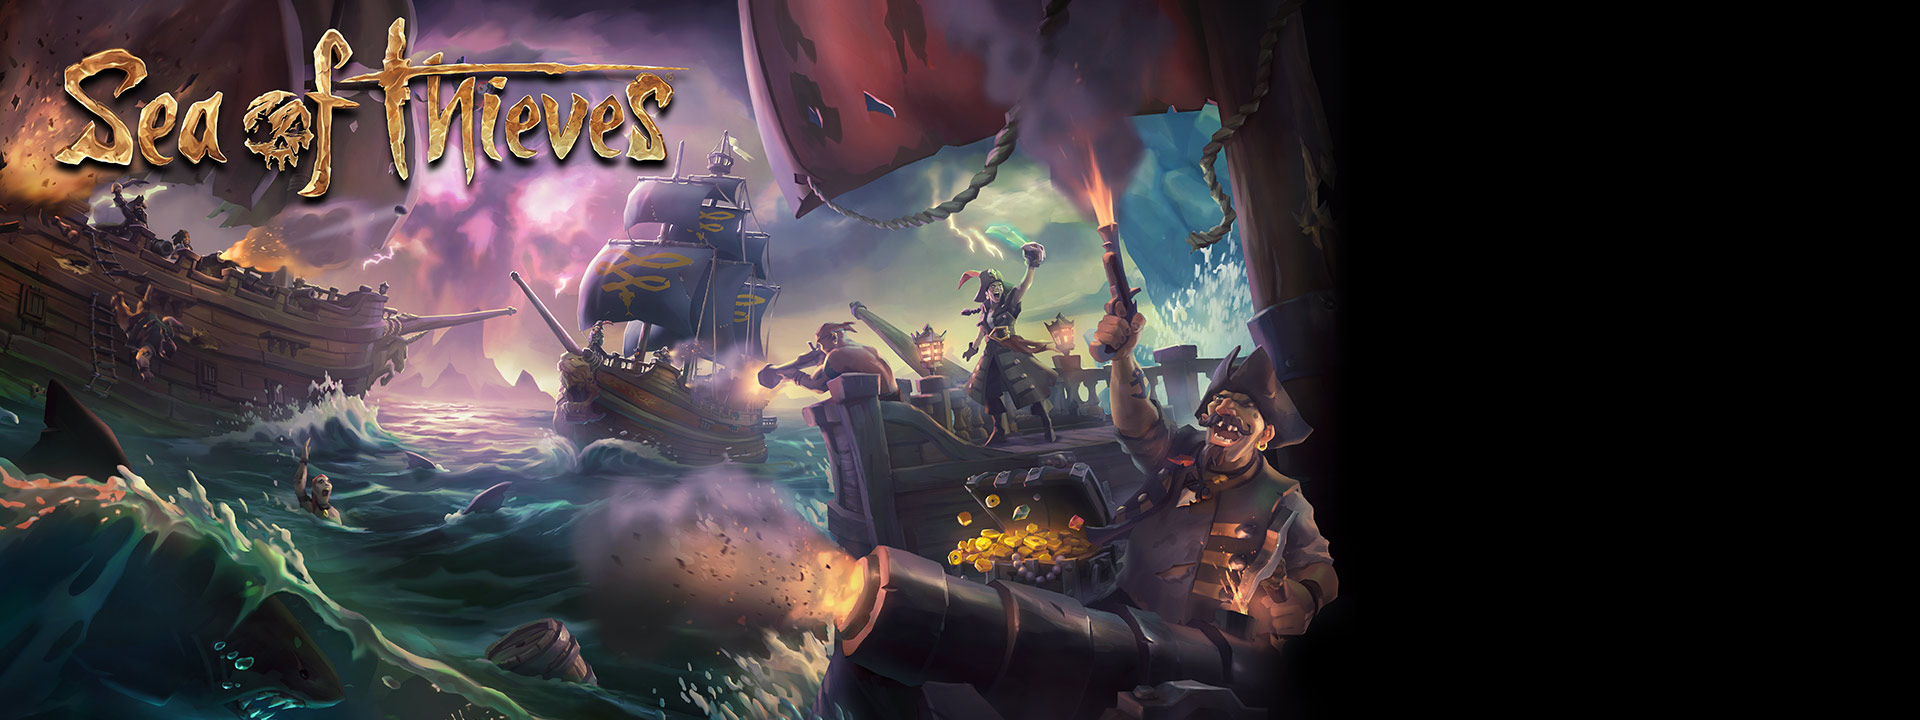 Sea of Thieves graphic - Ships shooting and looting each other